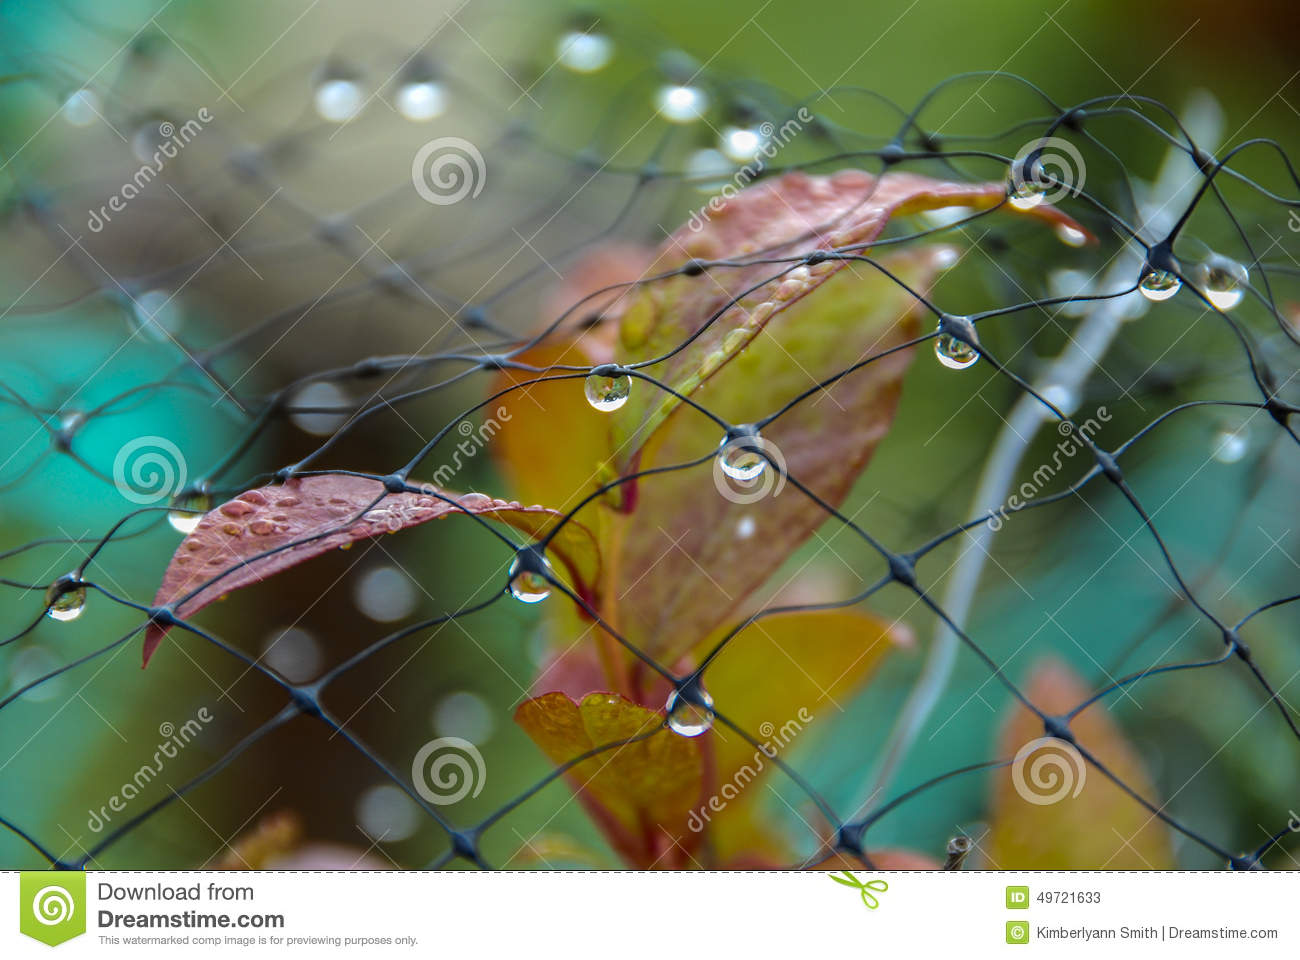 Dewdrops on mesh